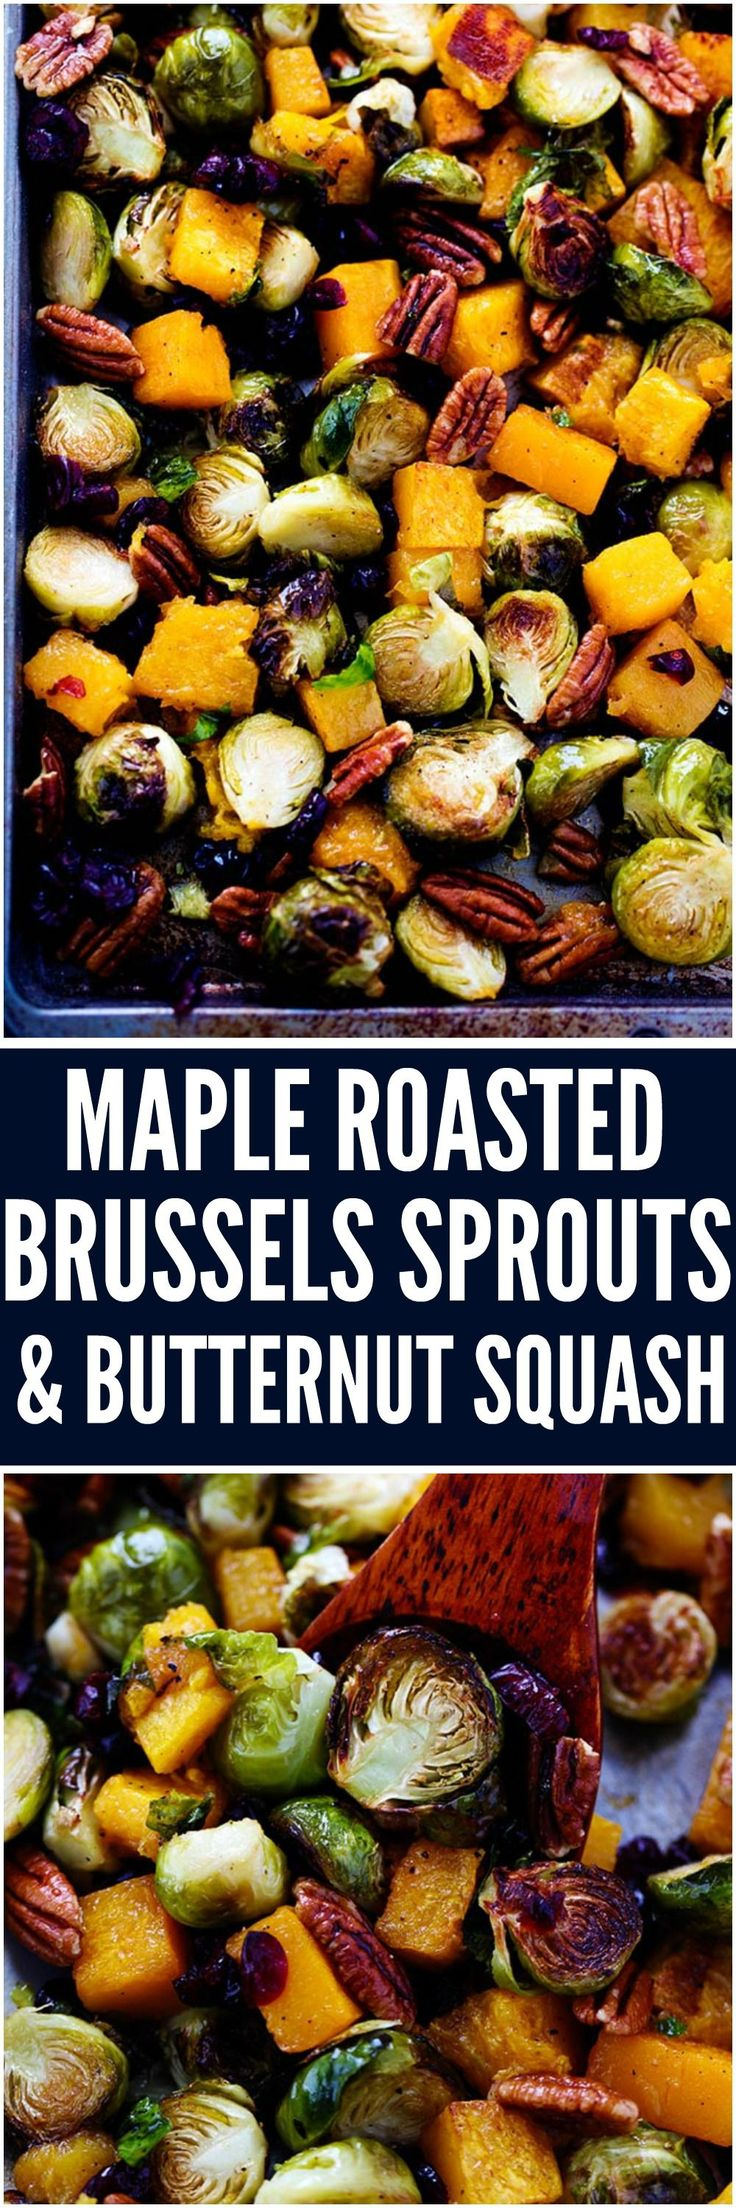 Maple Roasted Brussel Sprouts and Butternut Squash are so simple to make but full of incredible flavor. They are crisp on the edges and soft and tender inside in a delicious maple glaze and surrounded by crunchy pecans and cranberries.